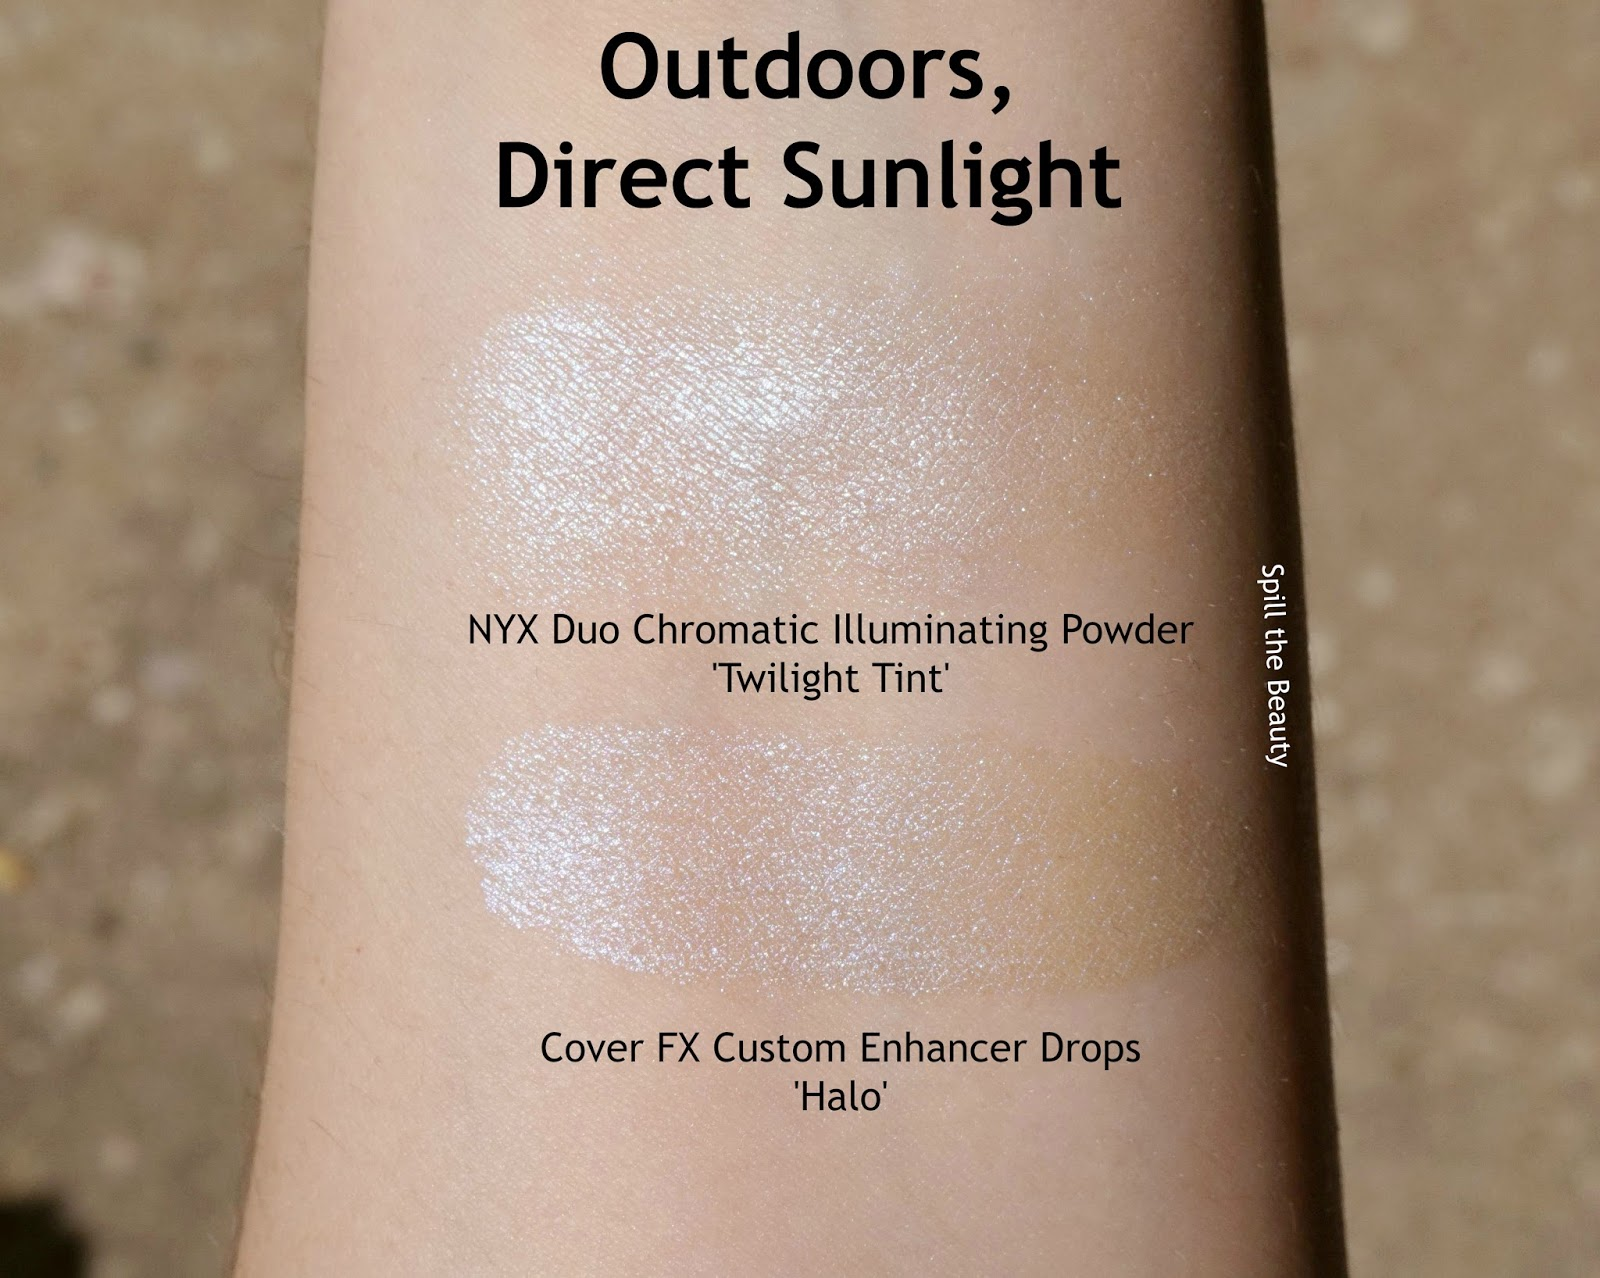 nyx duo chromatic illuminating powder highlighter twilight tint review swatches dupe comparison cover fx custom enhancer drops halo